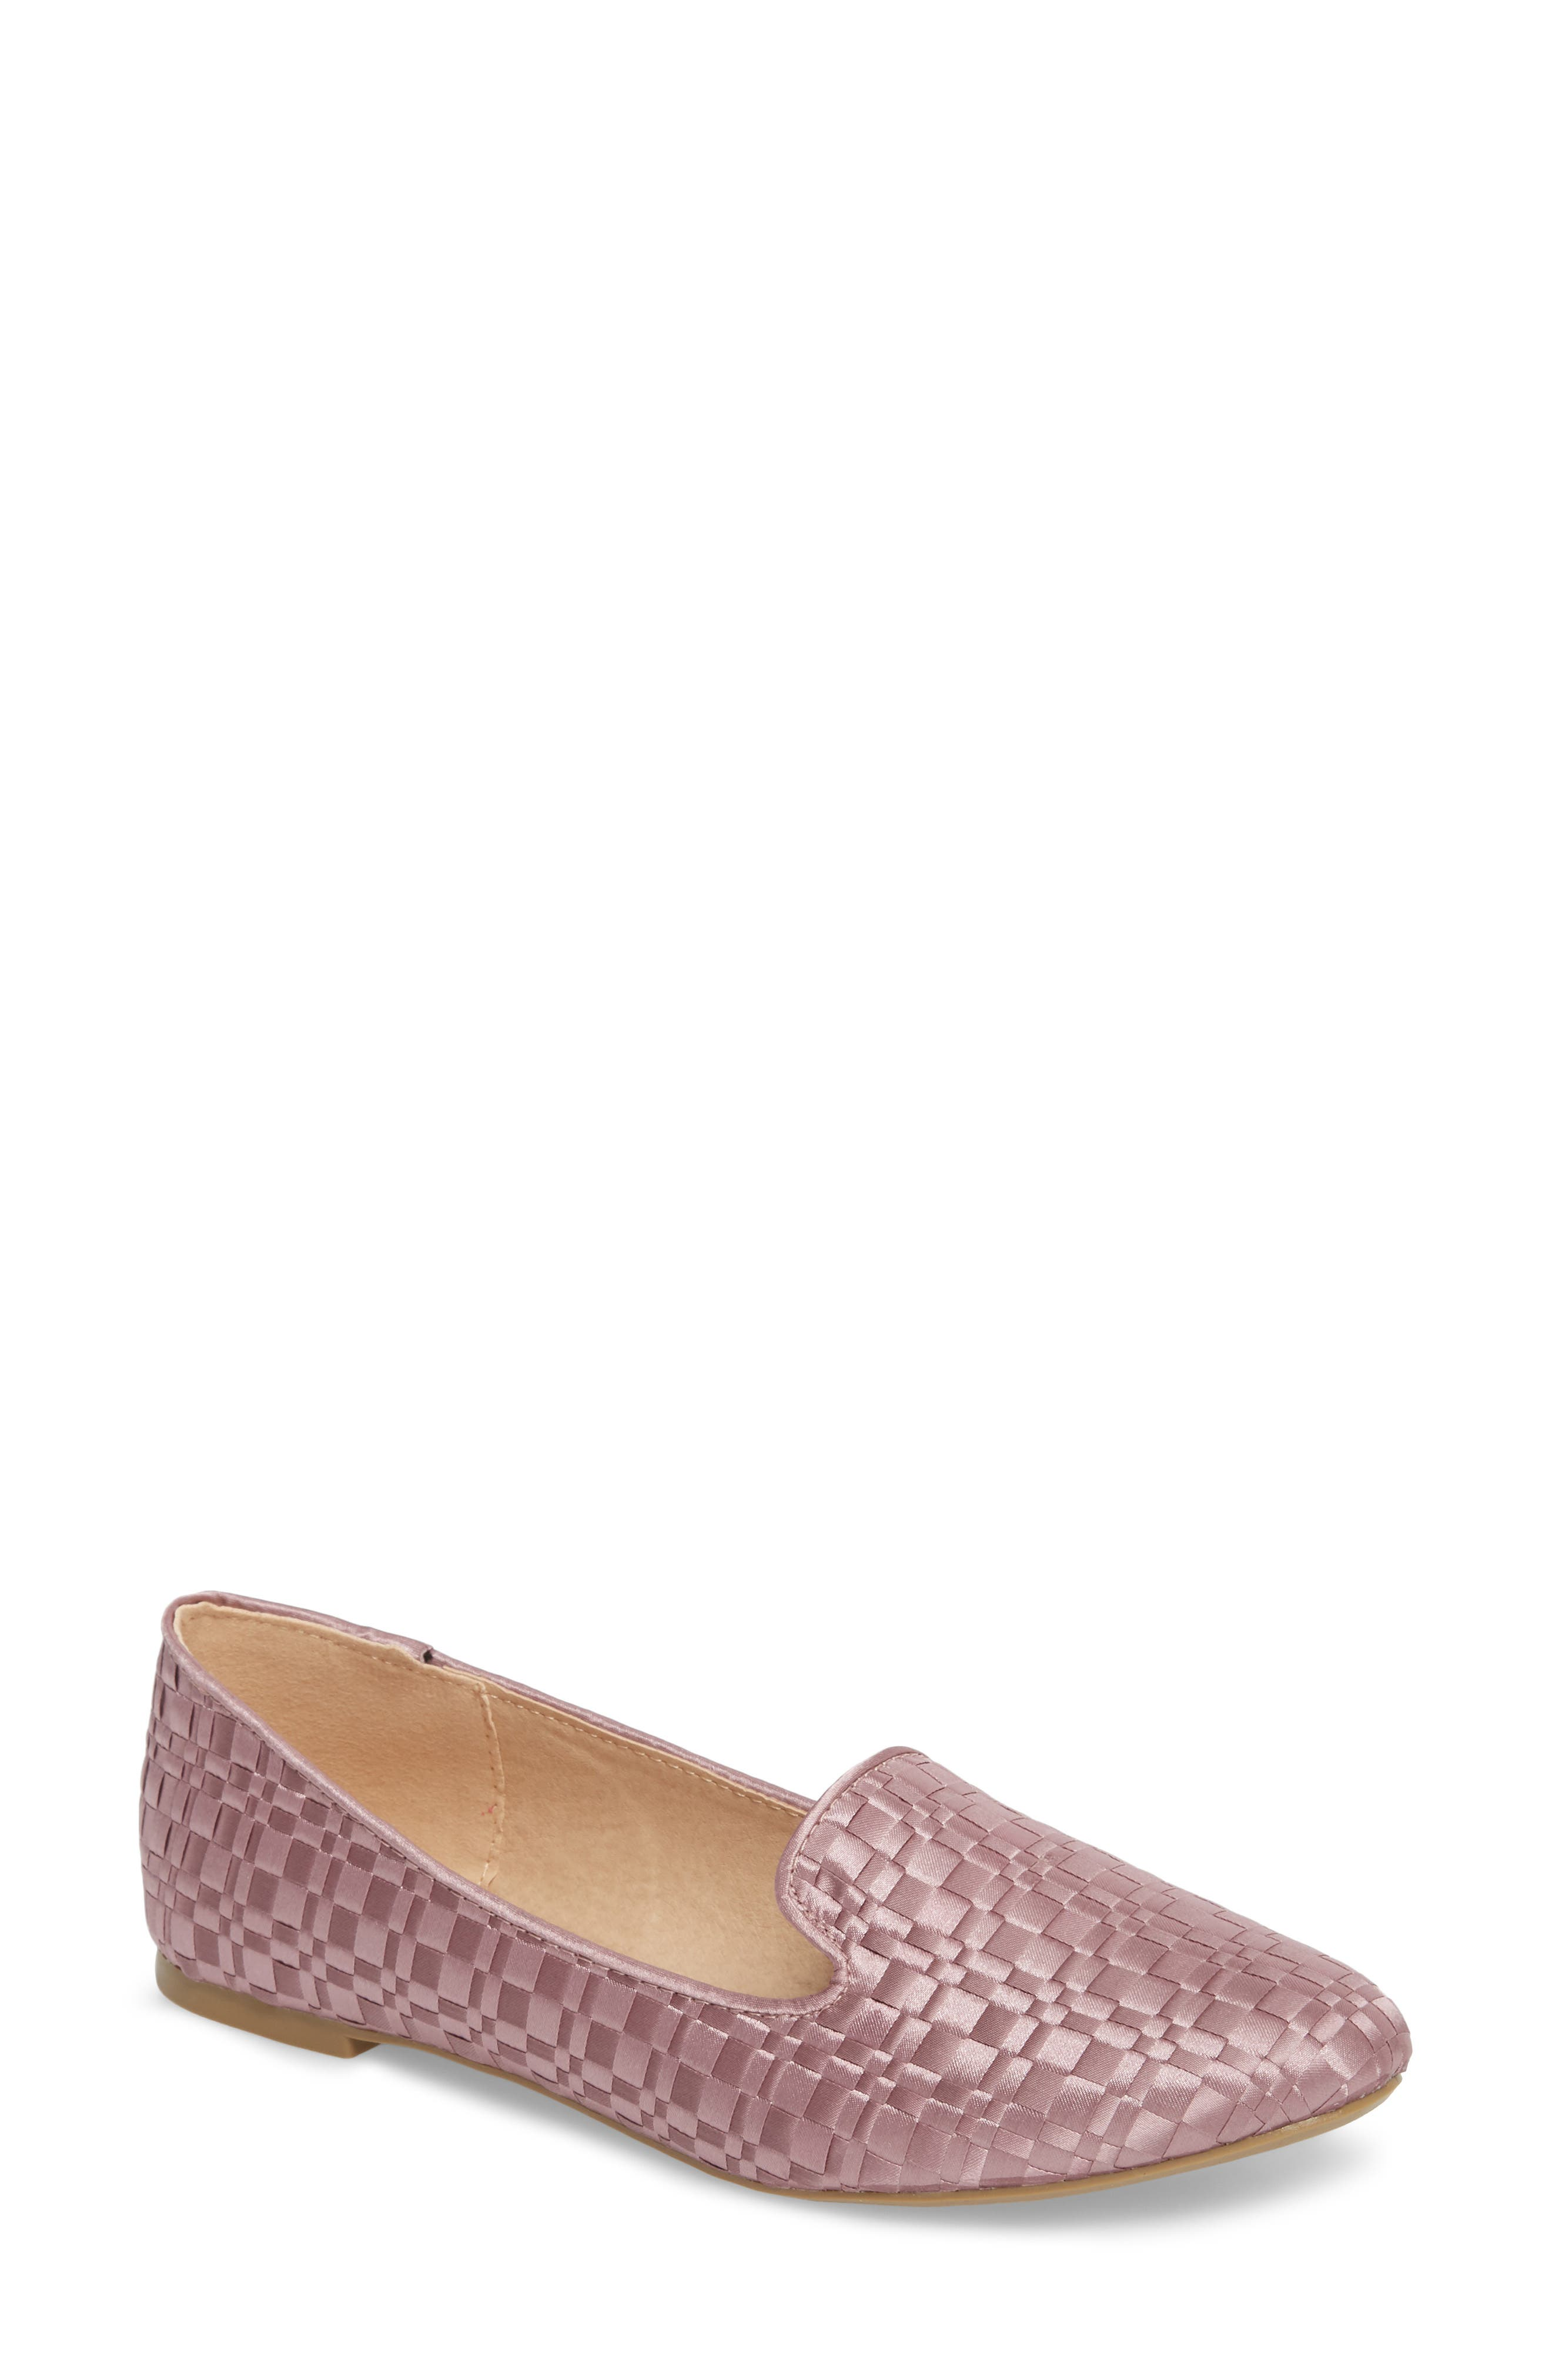 Sasha Textured Woven Loafer,                         Main,                         color, PINK